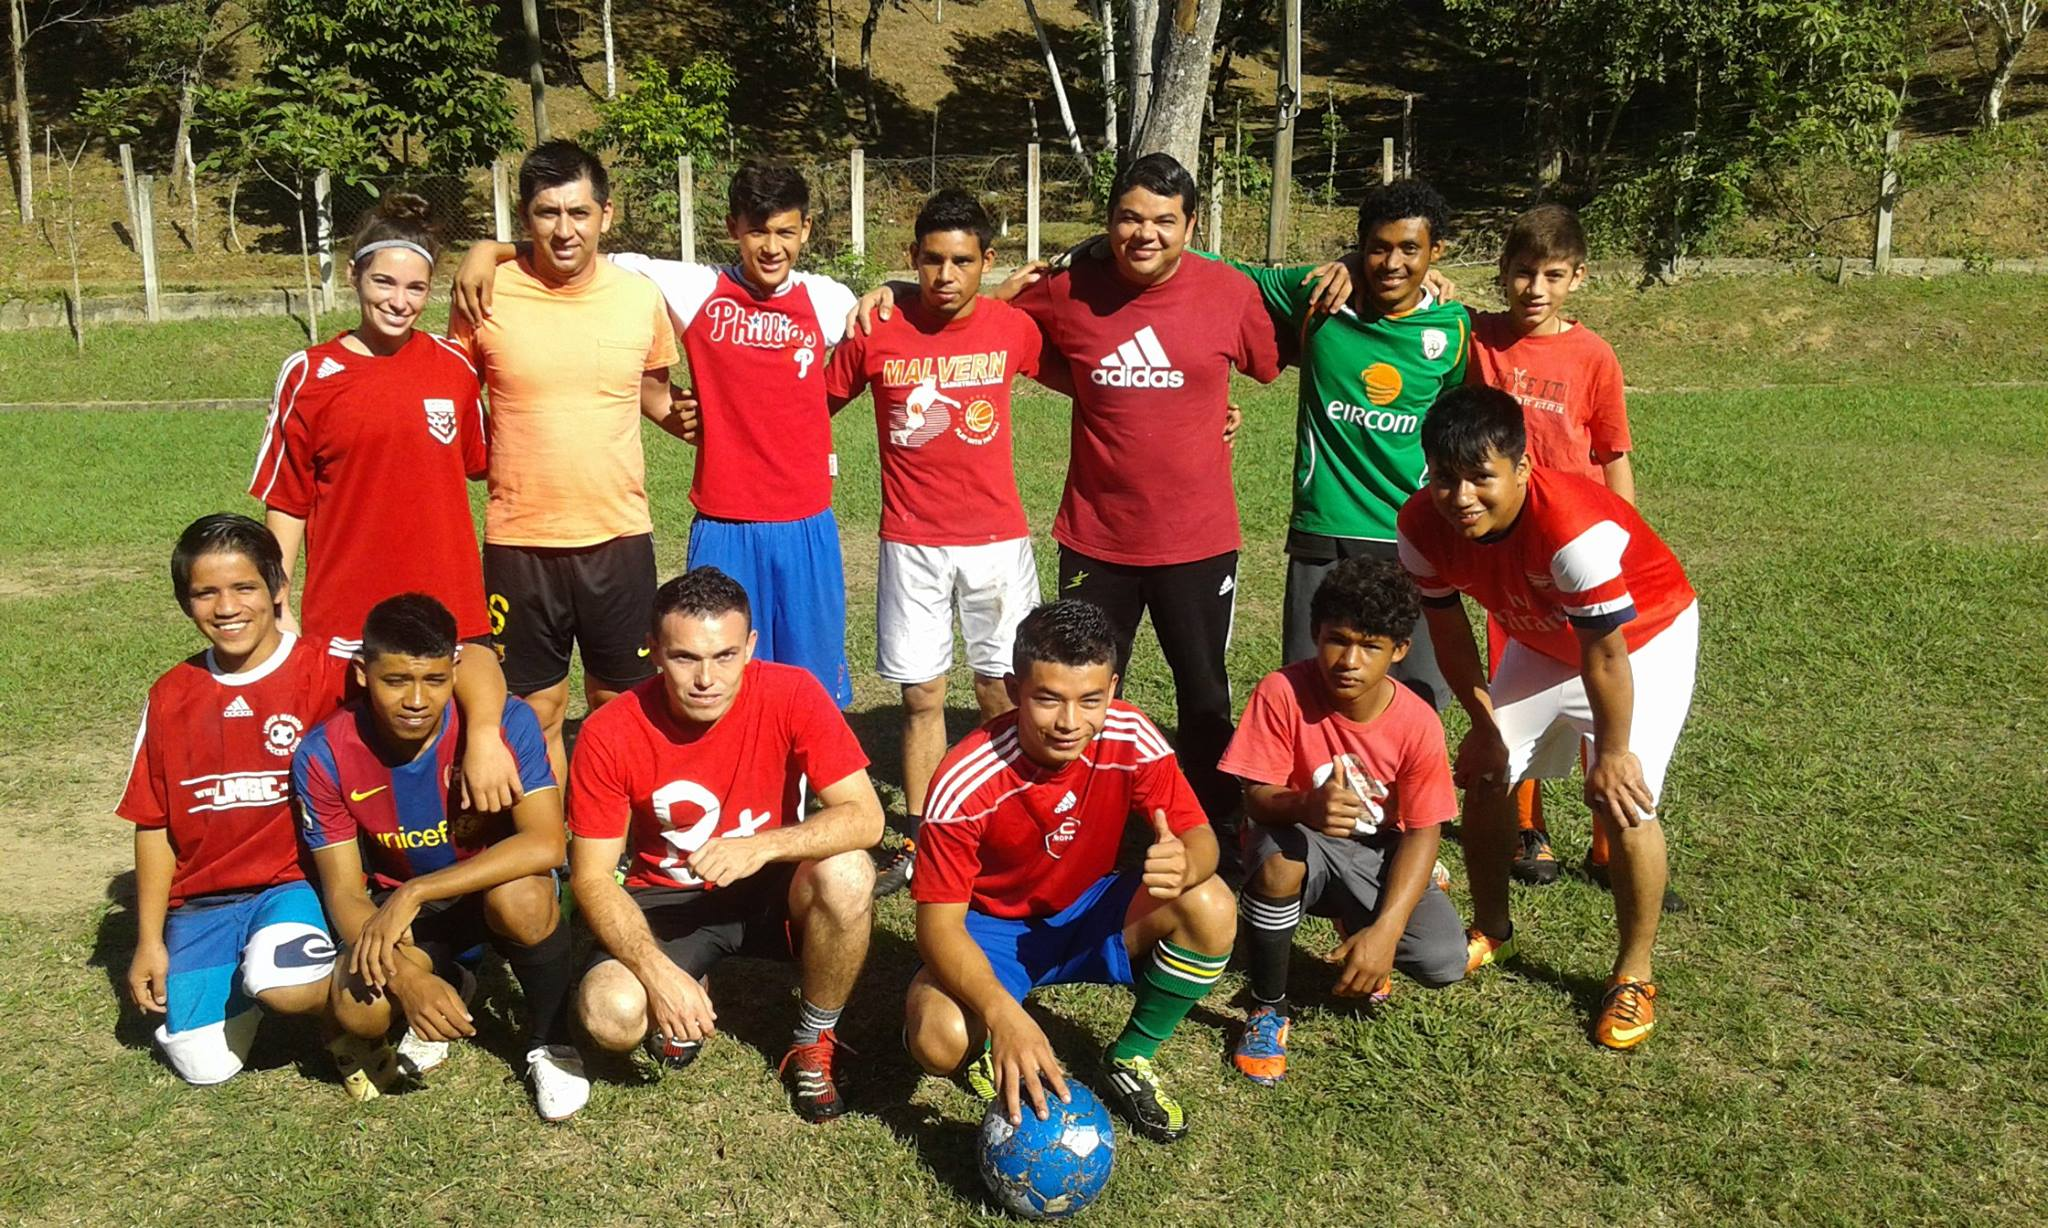 Carlos (top row, center, white shorts) and his team Juventus after winning the 2015 Amigos de Jesús Christmas Soccer Tournament.